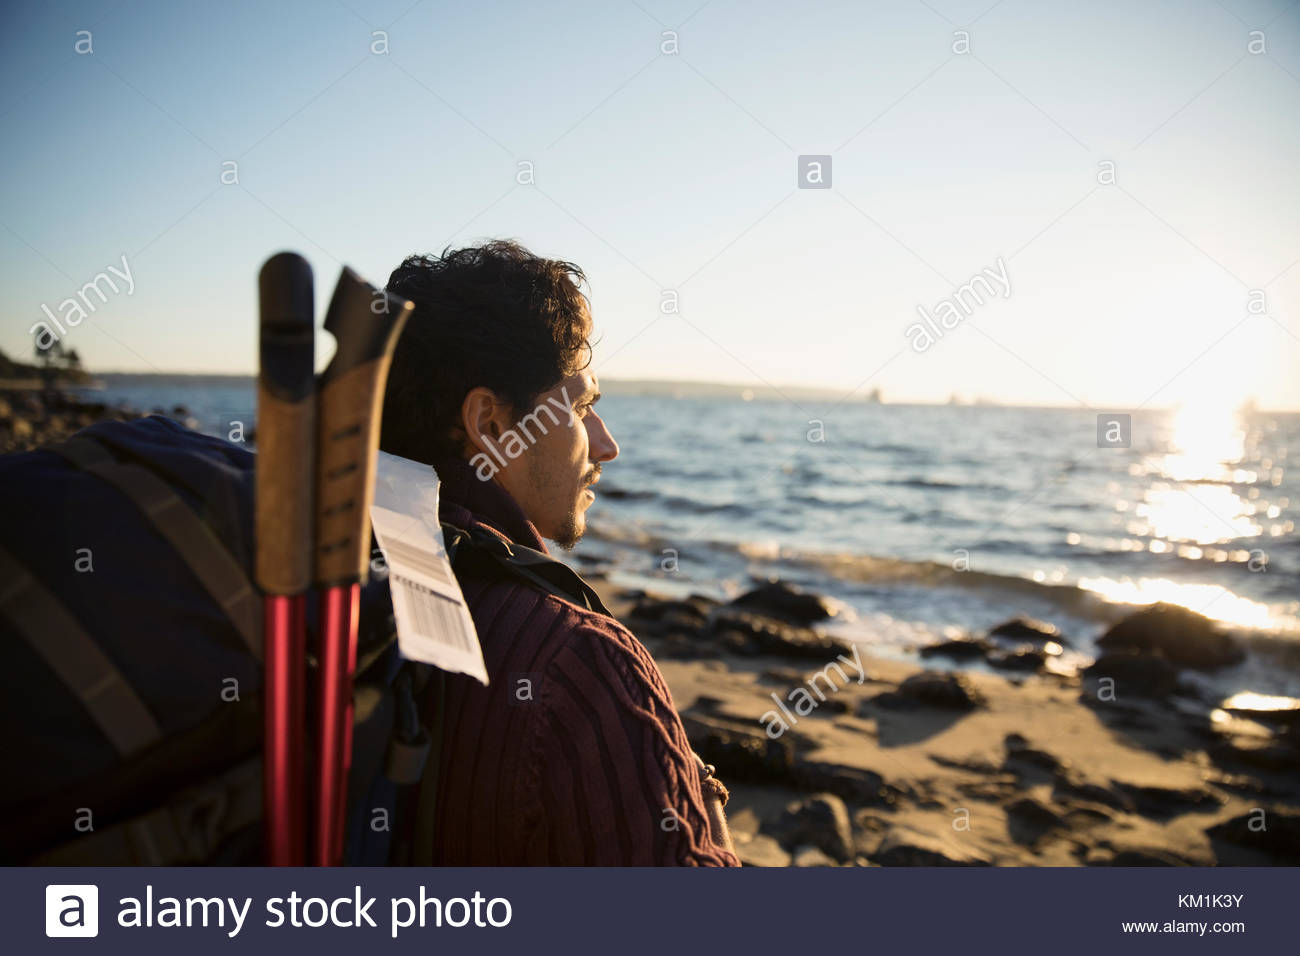 Man with hiking backpack looking at sunny ocean view - Stock Image